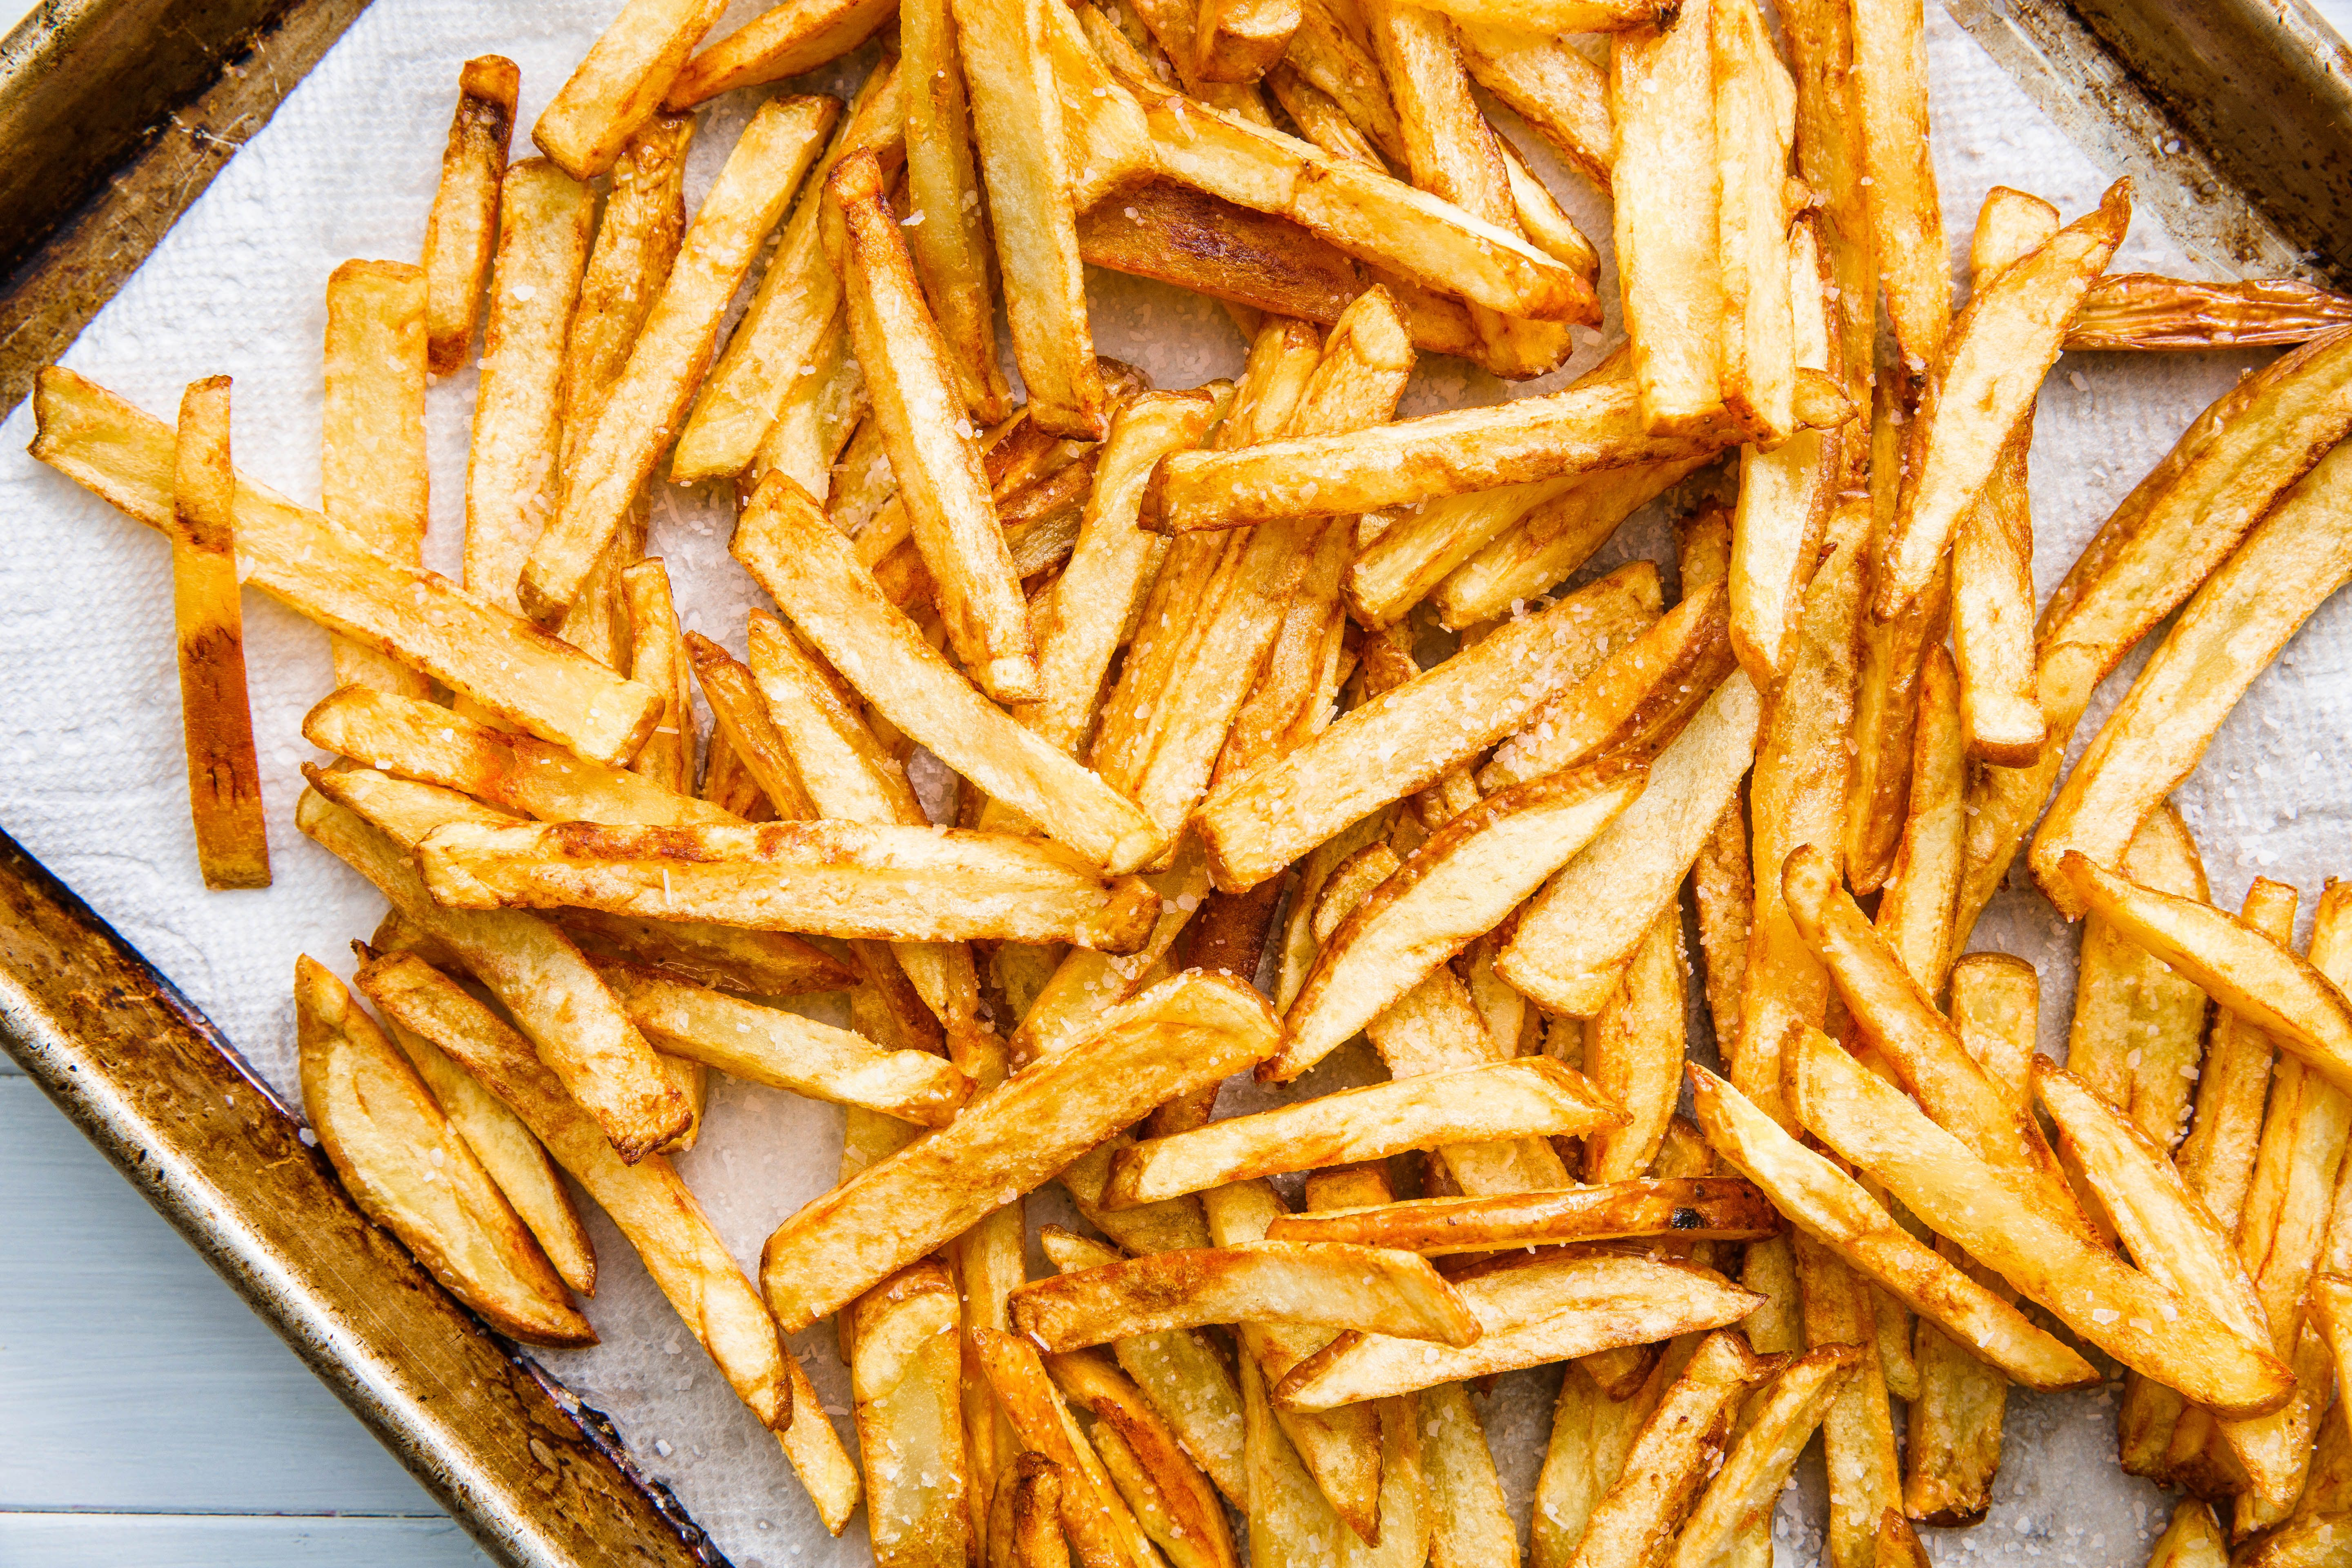 To make change in french fry crispy at home recipe